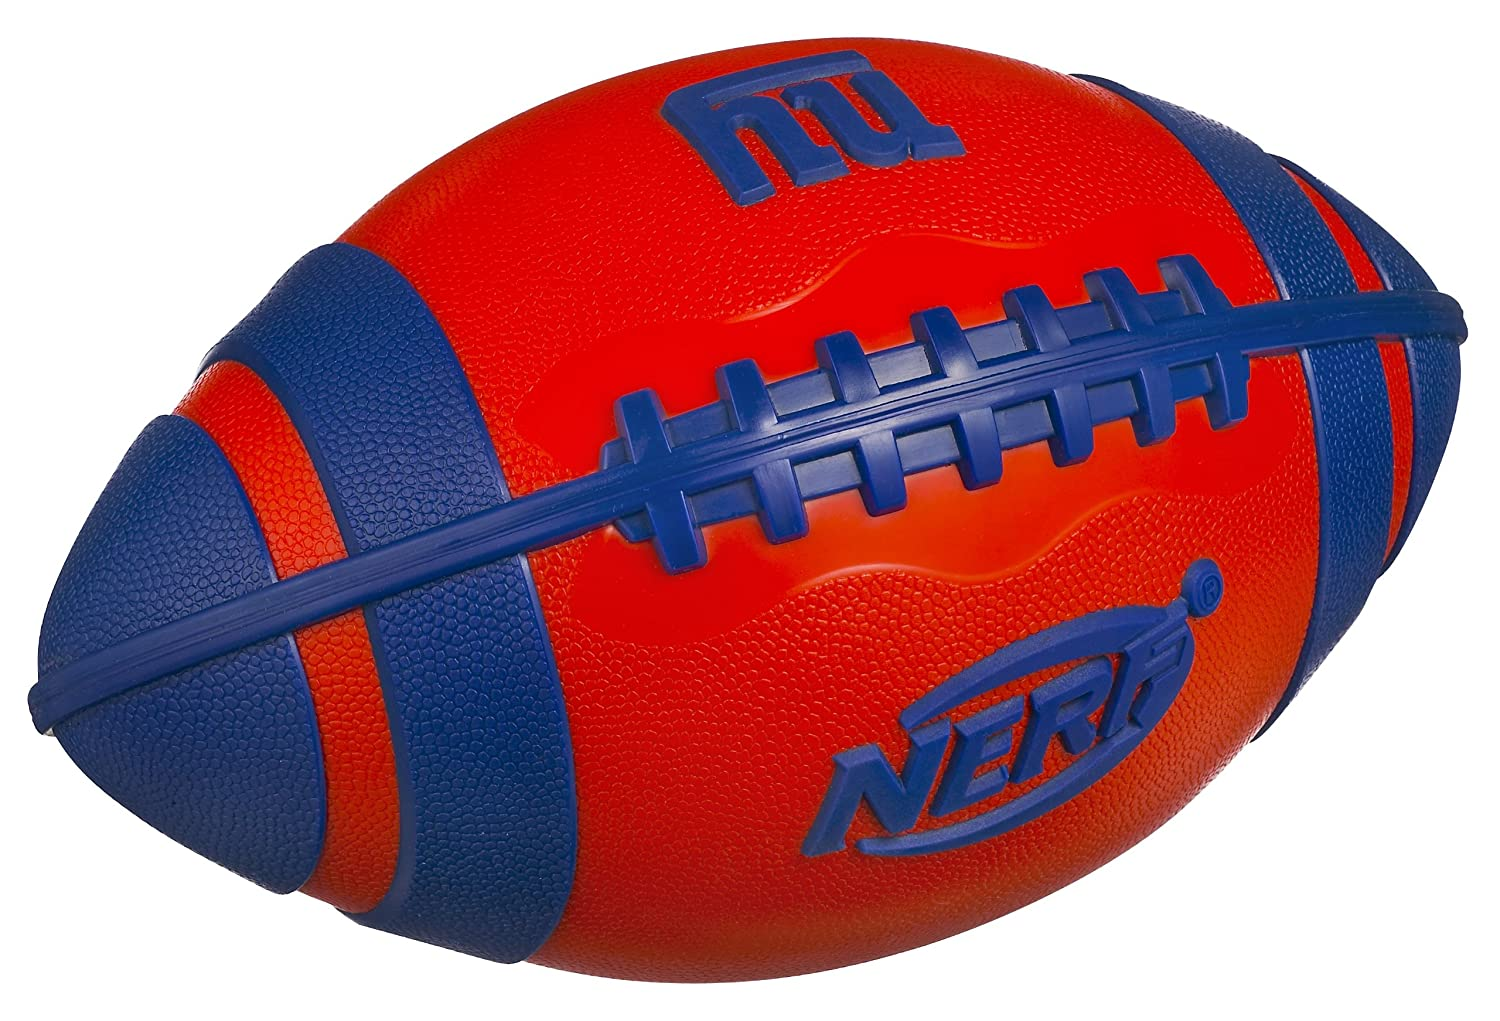 Nerf Wetter Blitz PRO Fußball NY Giants New York Nerf Weather Blitz PRO Football NY Giants New York günstig bestellen